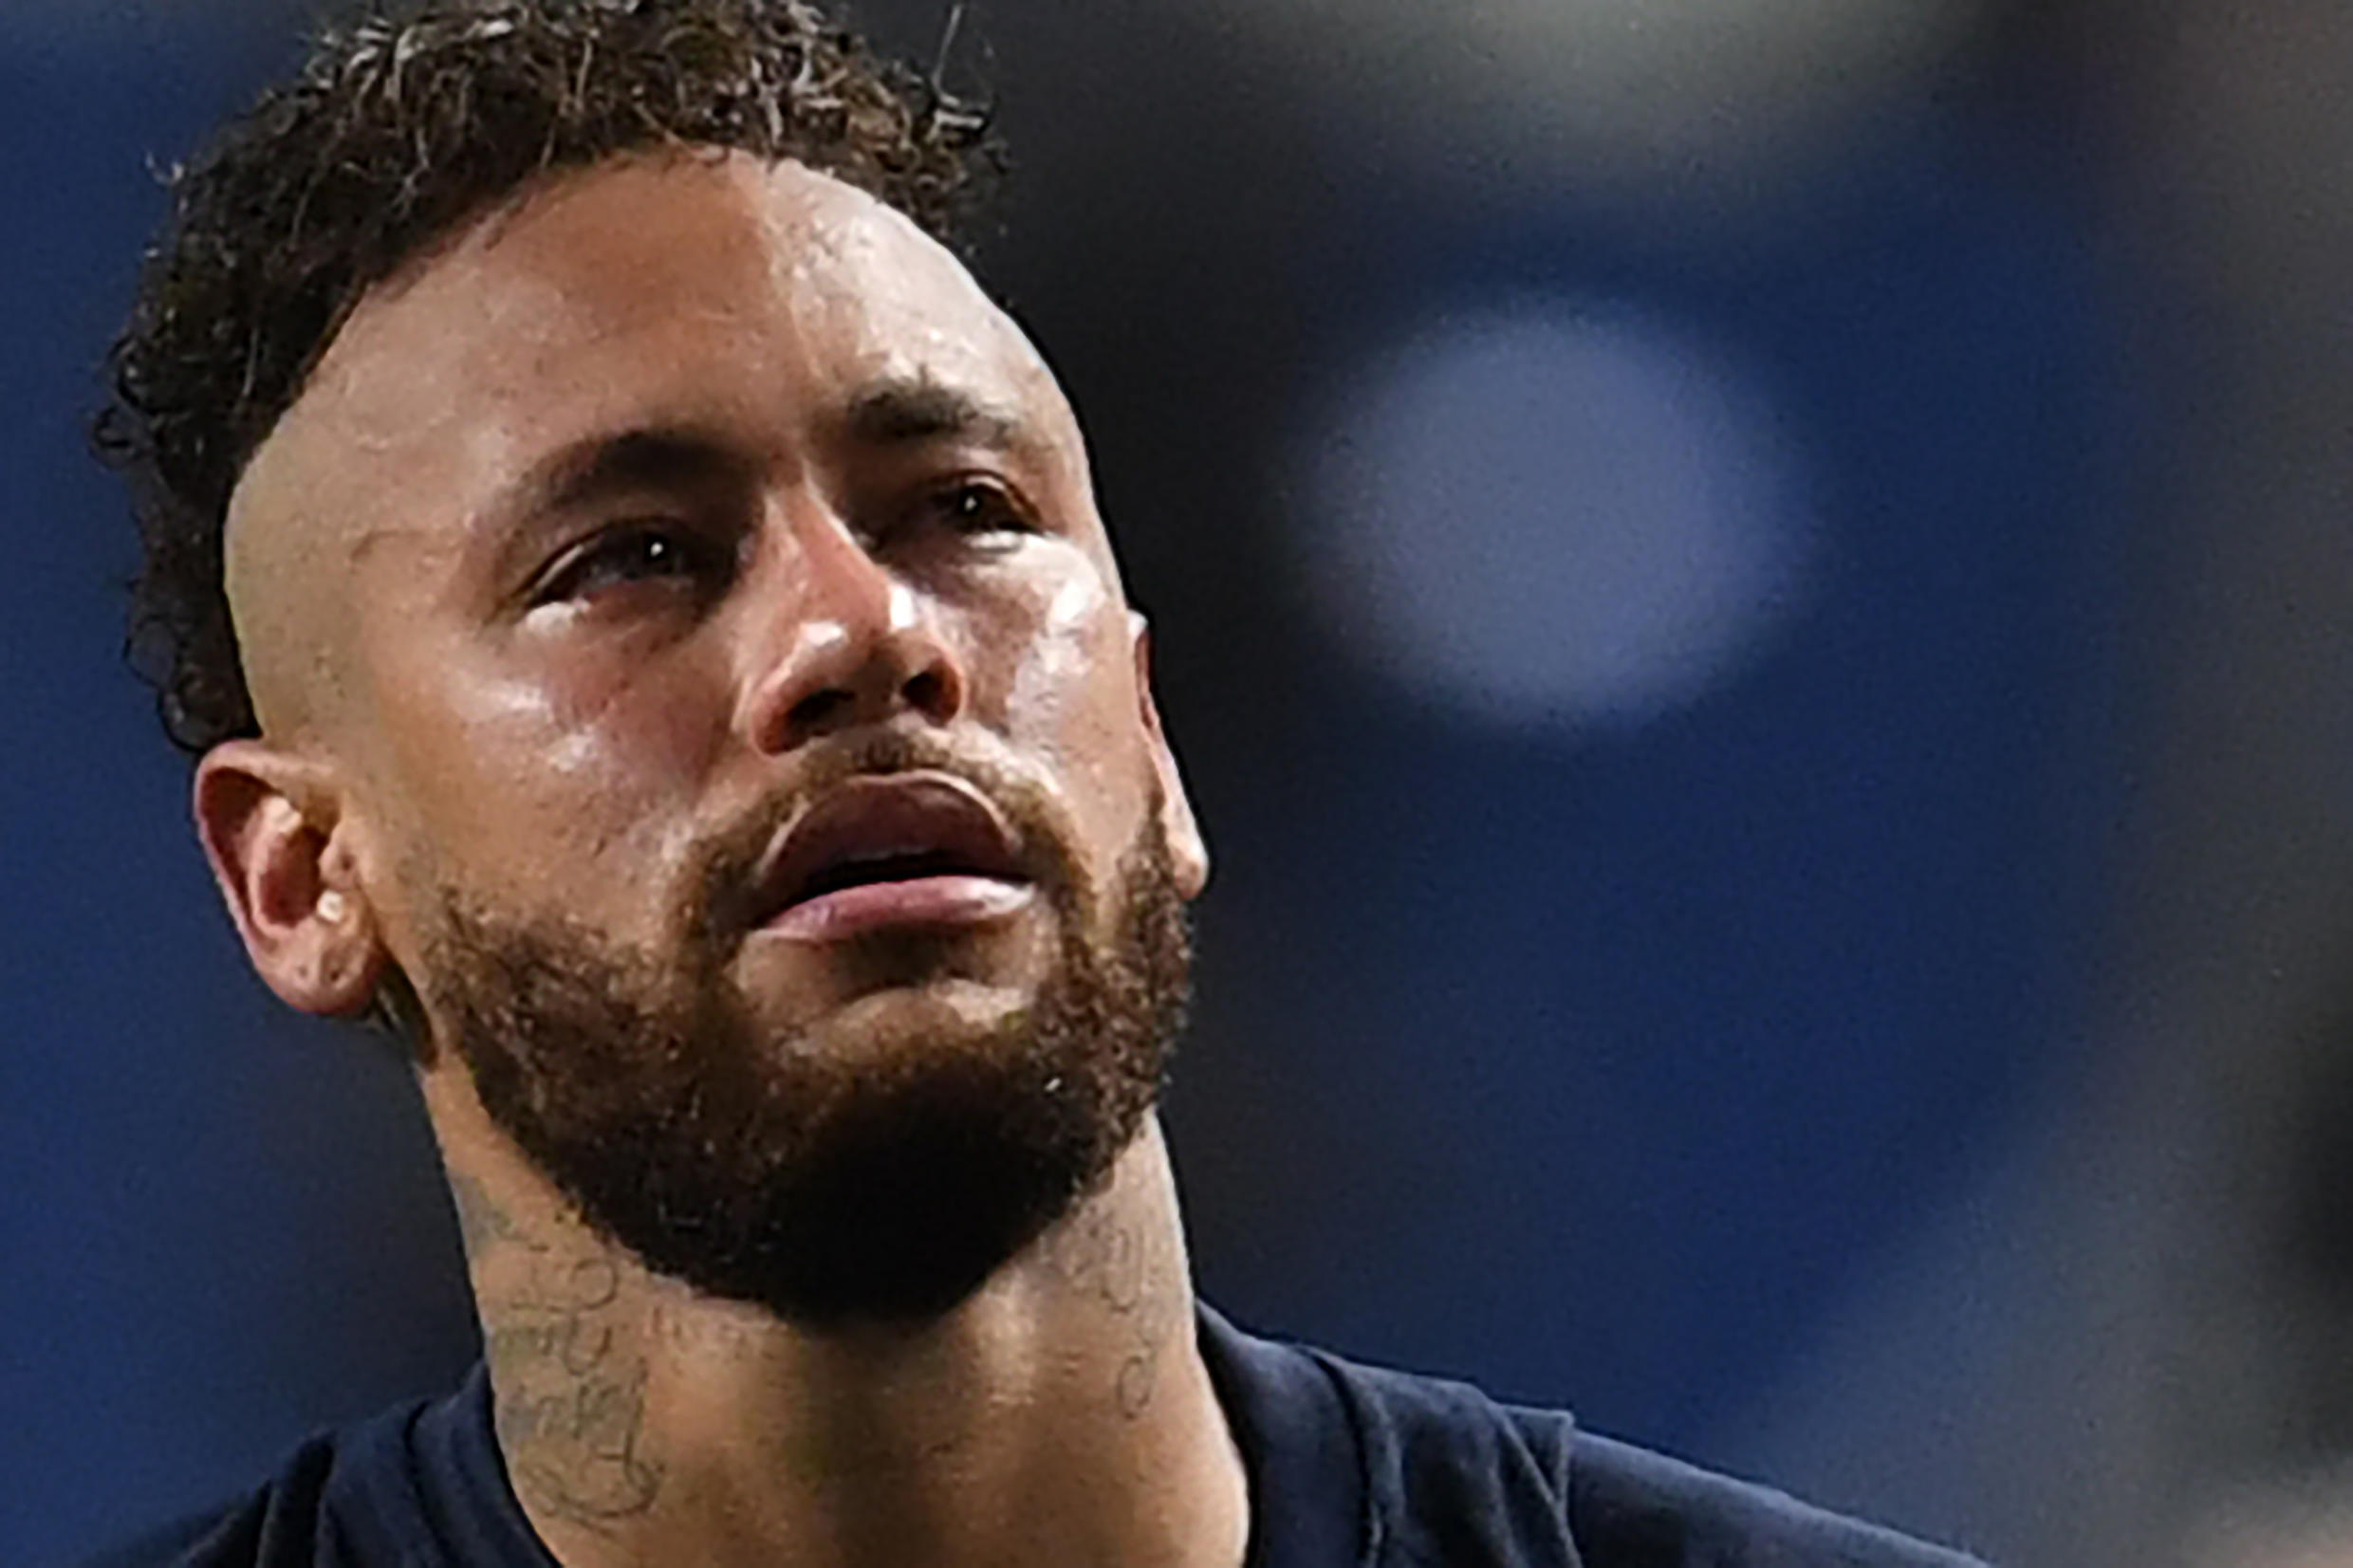 It ended in tears for Neymar after Sunday's Champions League final defeat to Bayern Munich in Lisbon